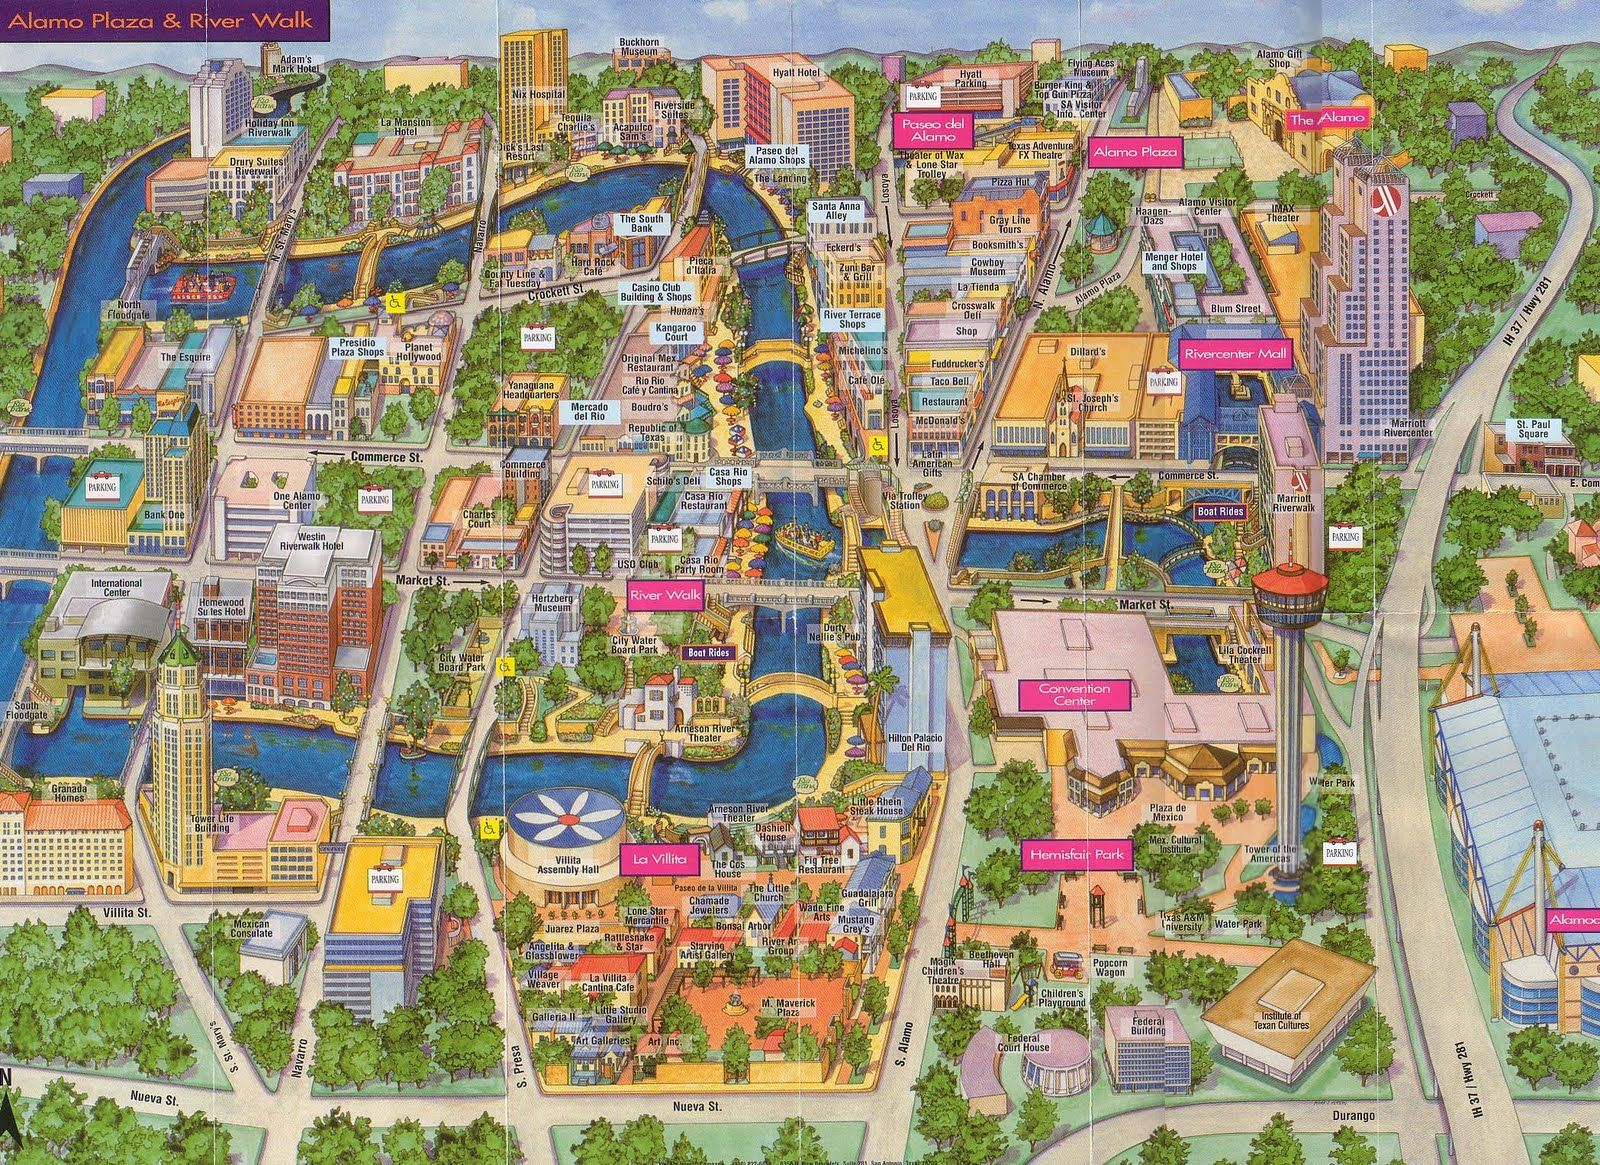 San Antonio River Walk Map | San antonio texas riverwalk ... on san antonio restaurant map, san antonio downtown hotels map, phoenix convention center hotels map, city of san antonio map, houston hotels map, san antonio drury plaza hotel, san antonio medical center map, san antonio river map, san antonio parking map, grand hyatt san antonio map, corpus christi hotels map, alamo san antonio map, san antonio airport map, san antonio visitors map, colorado hotels map, port aransas hotels map, alamodome san antonio map, san antonio tx at night, san antonio riverwalk extension map, san antonio bay aerial map,